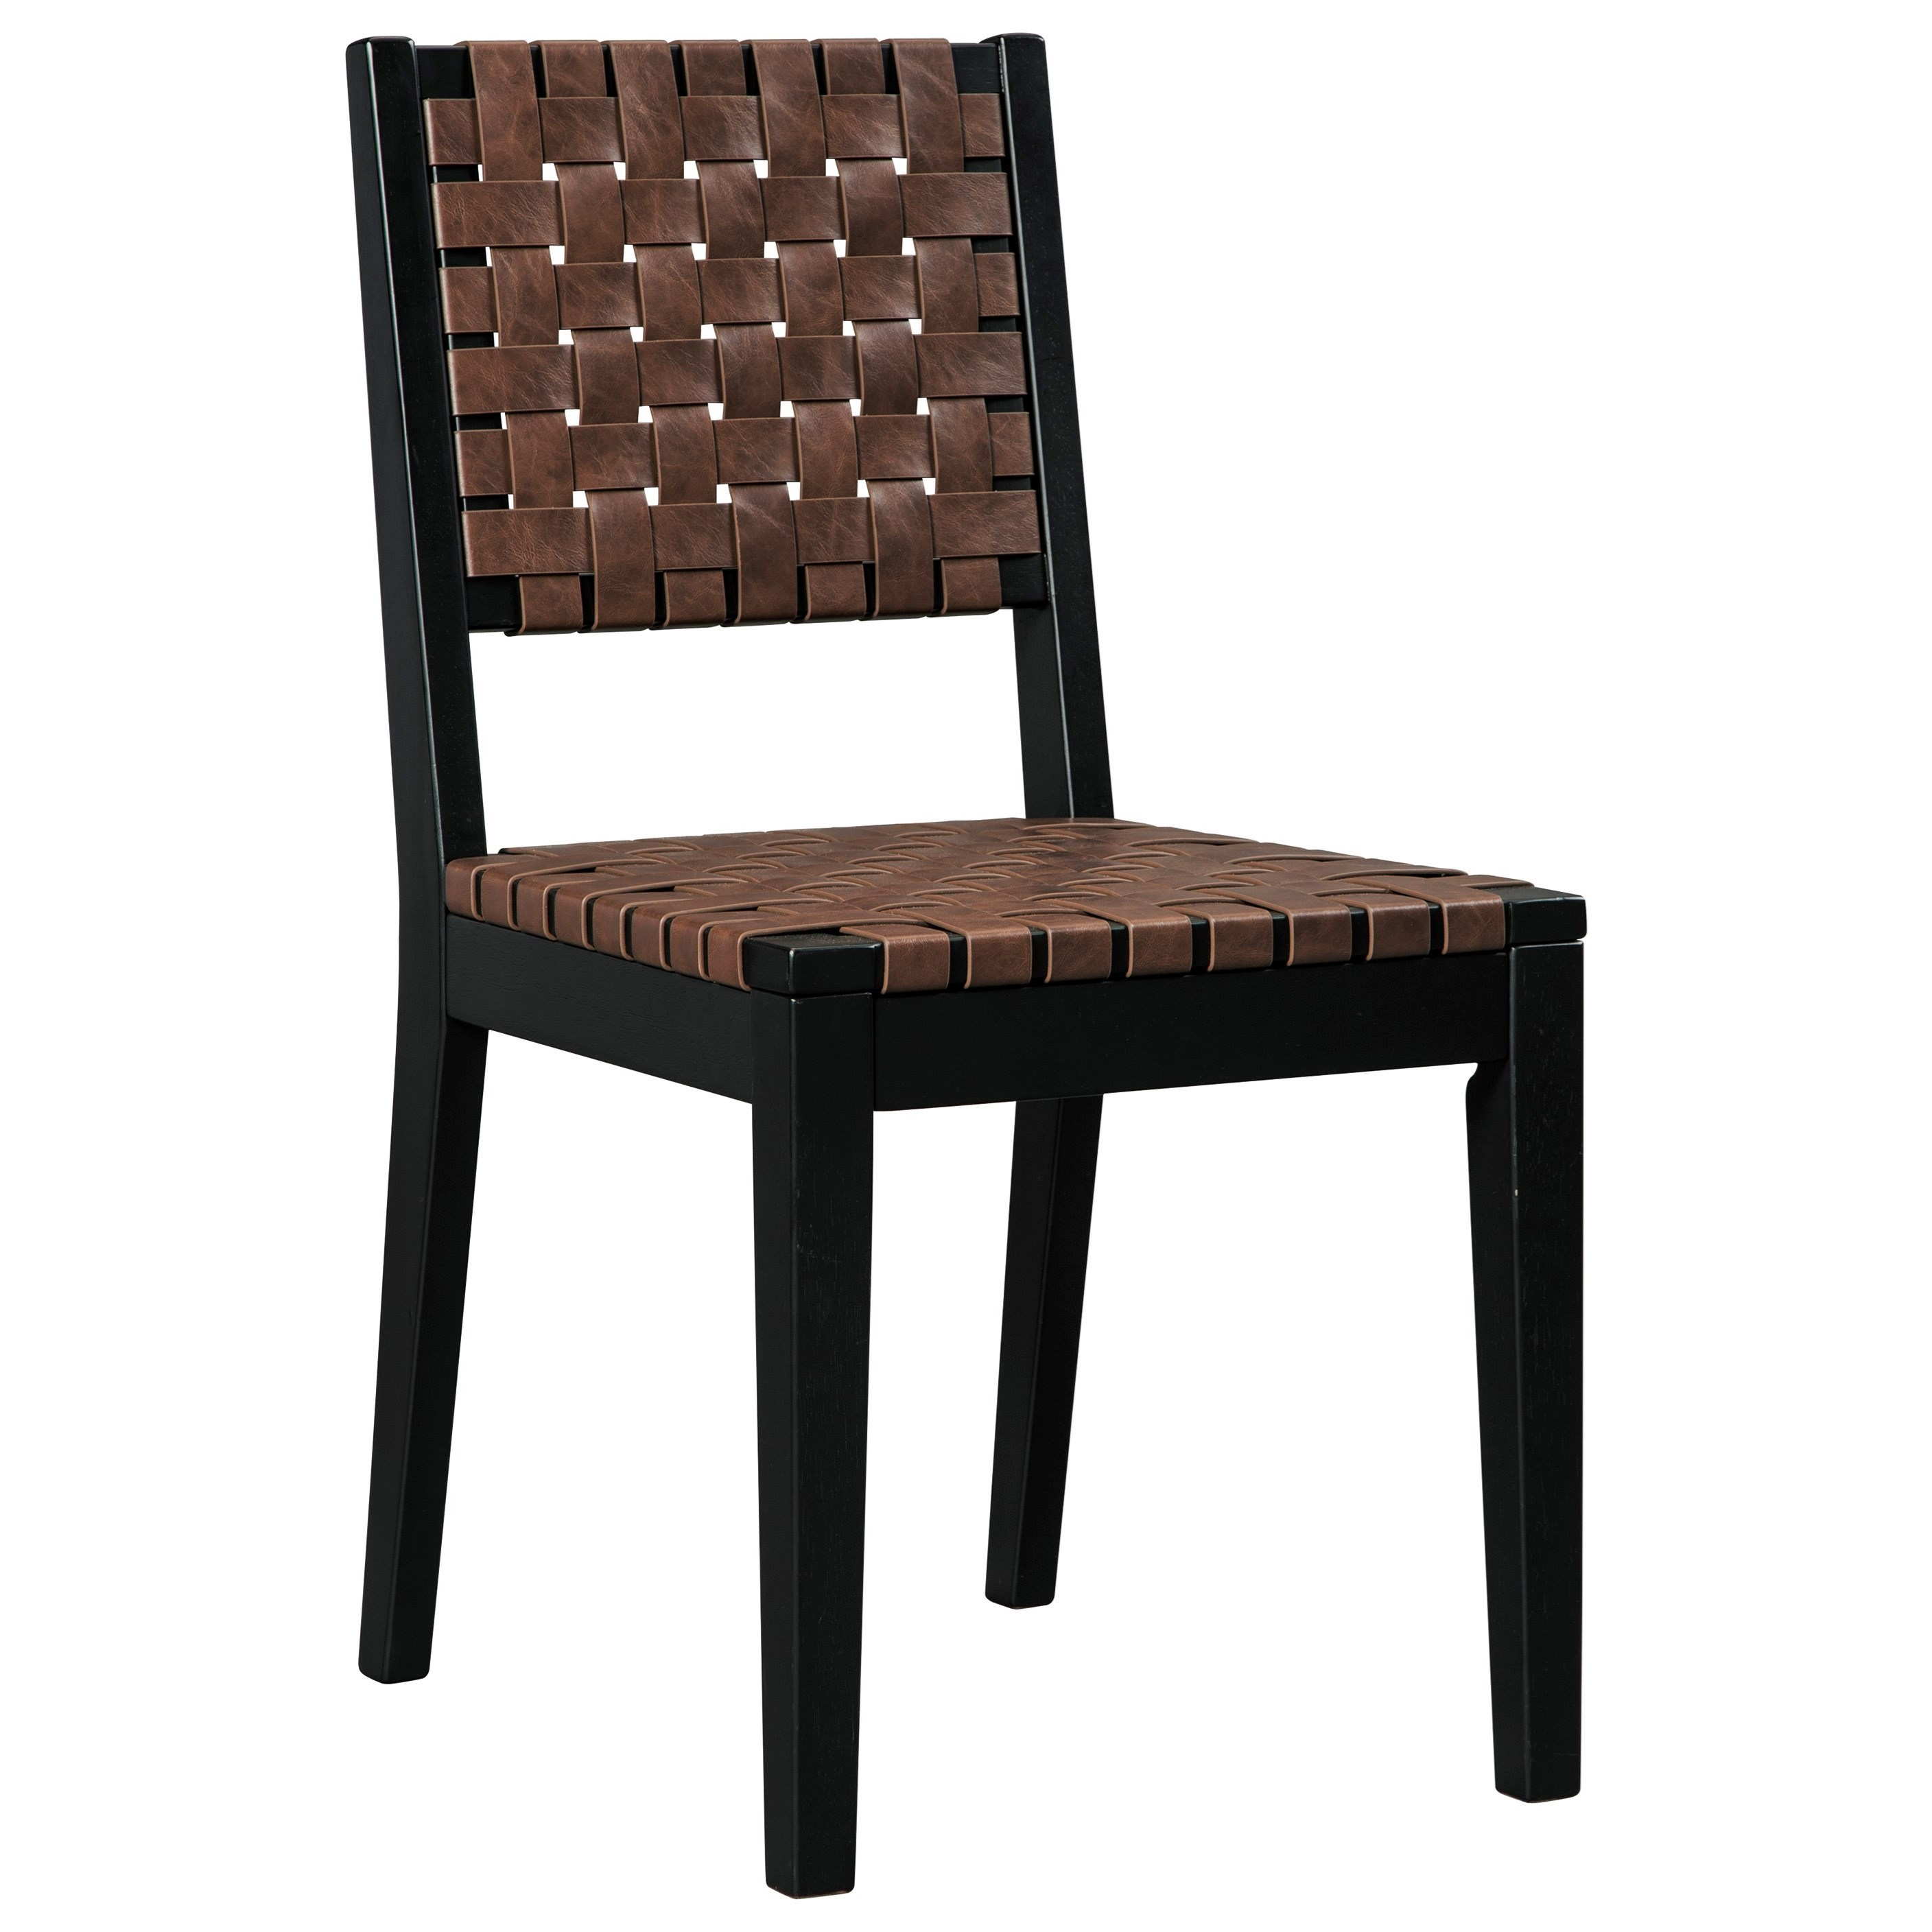 Signature Design by Ashley Glosco Dining Side Chair - Item Number: D548-02